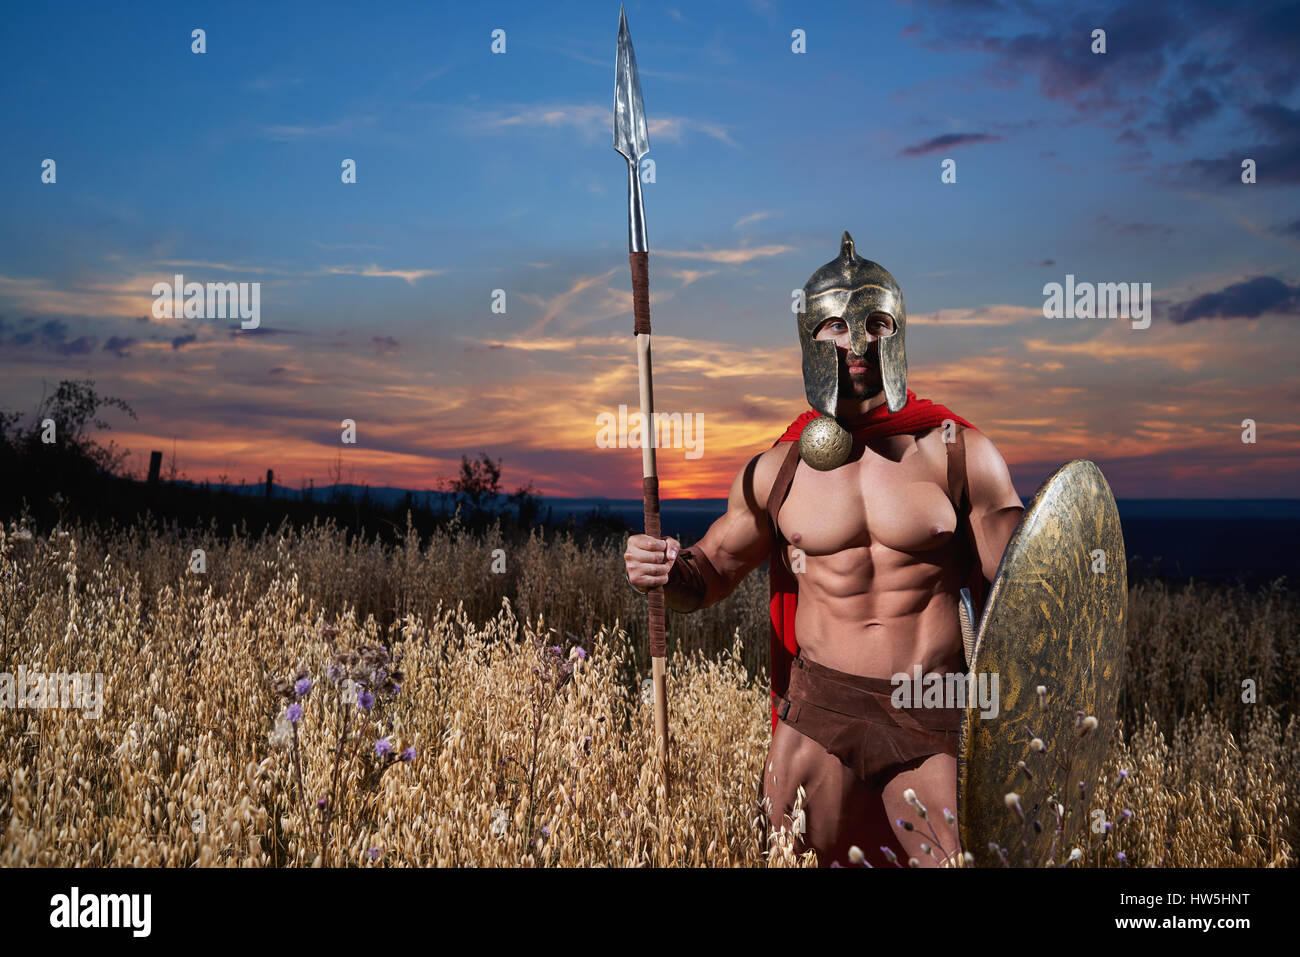 Warrior like spartan going forward in attack. - Stock Image